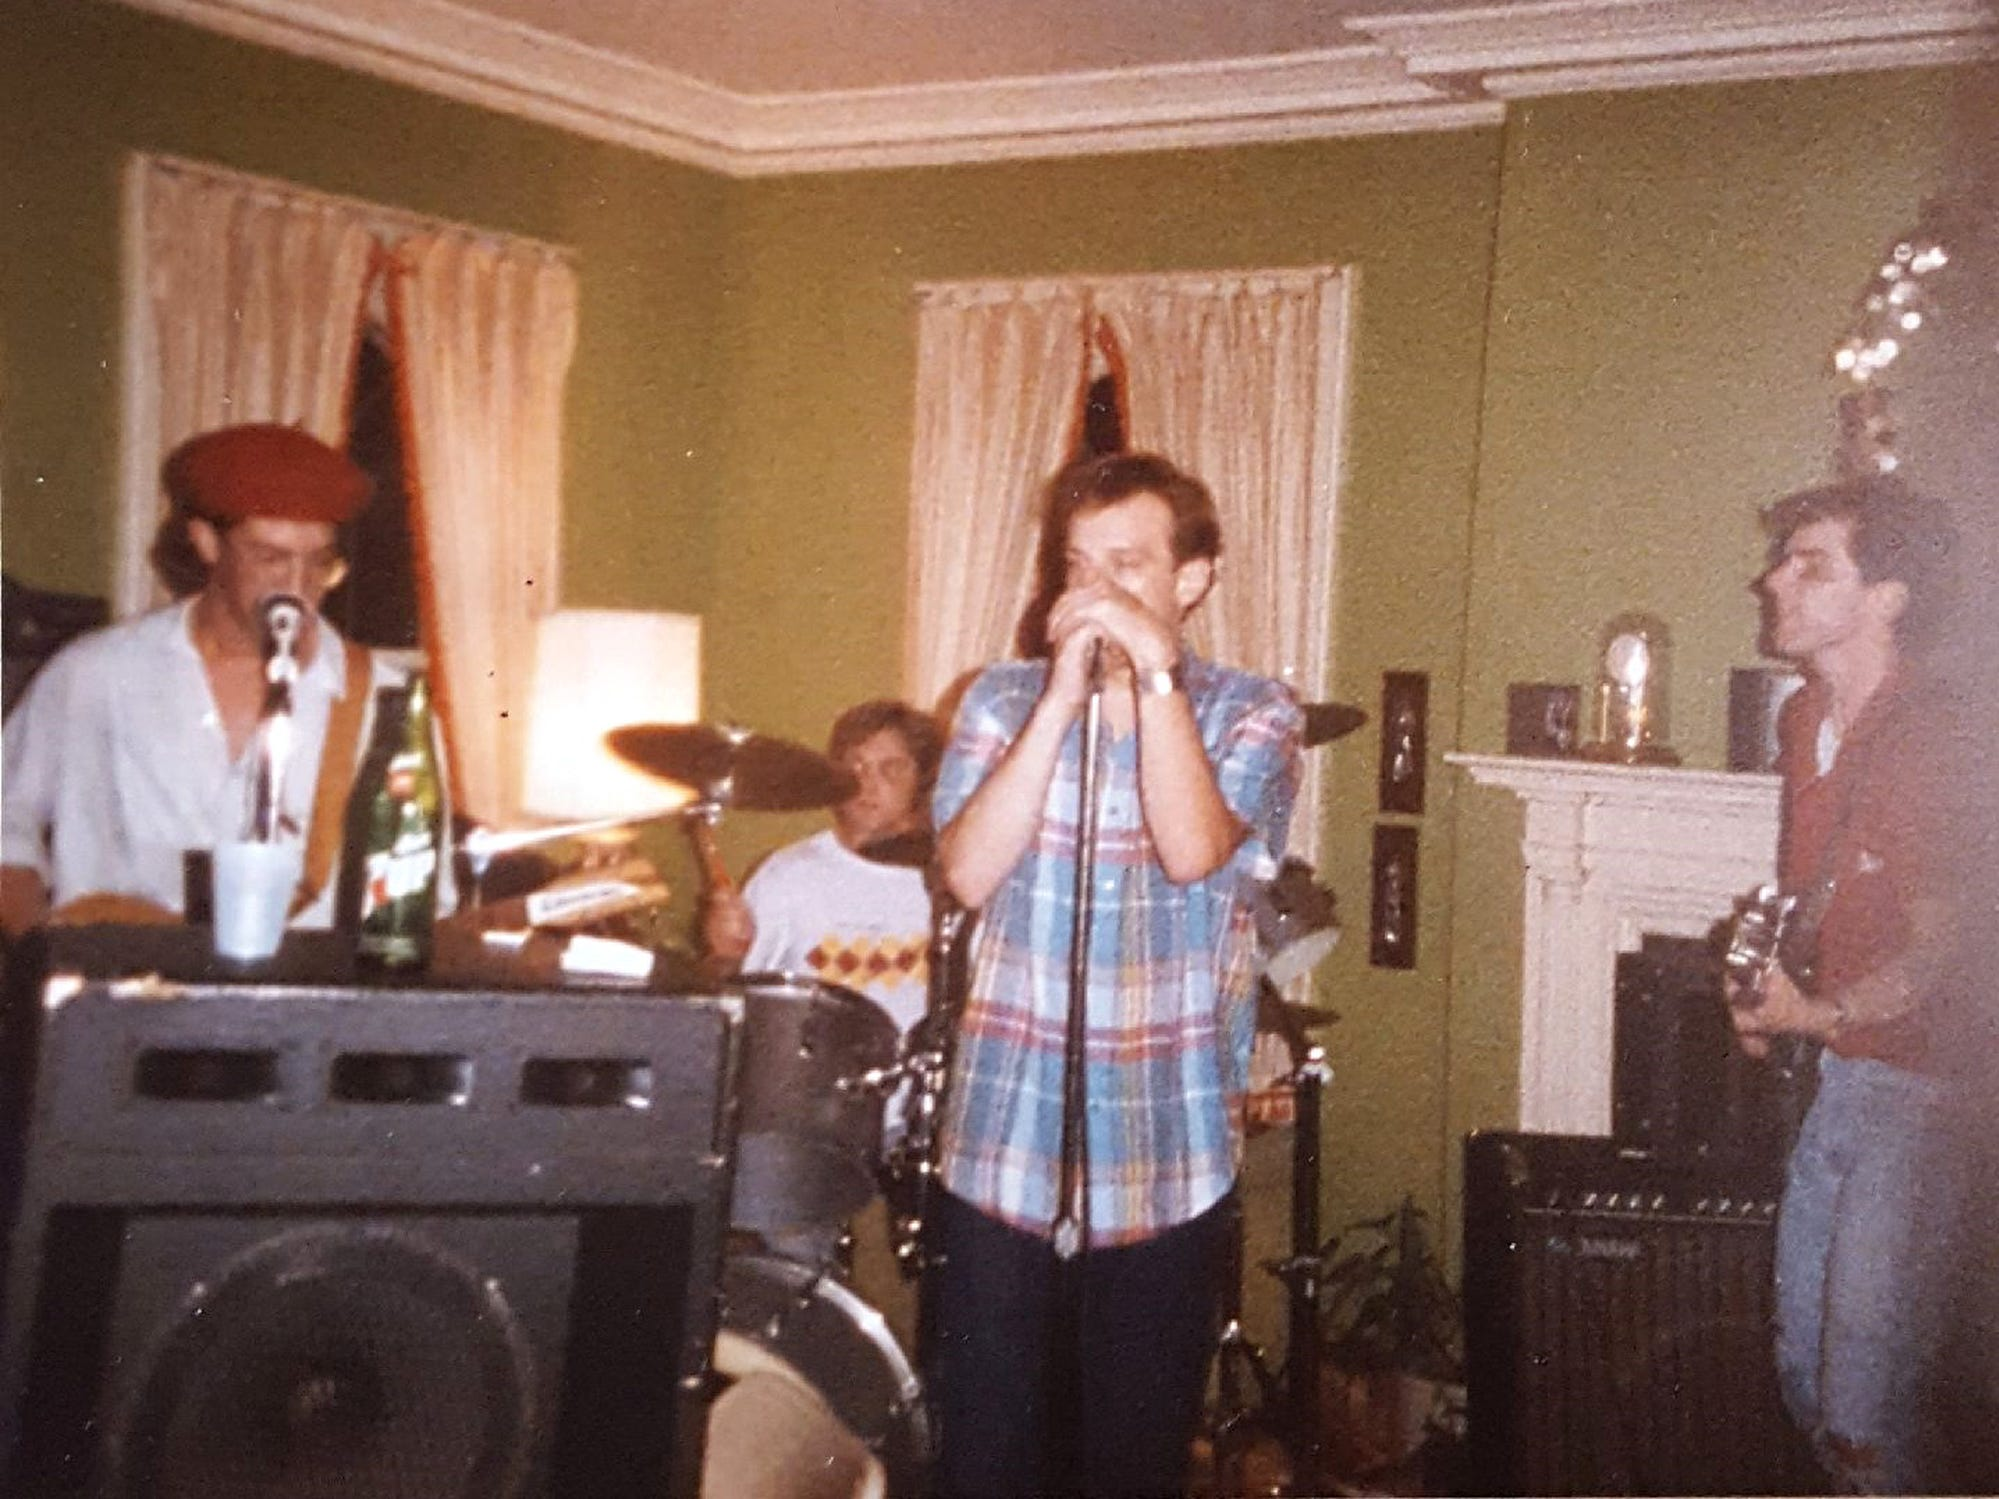 The parties often featured live music, in this case from Chimera Depot in 1984.